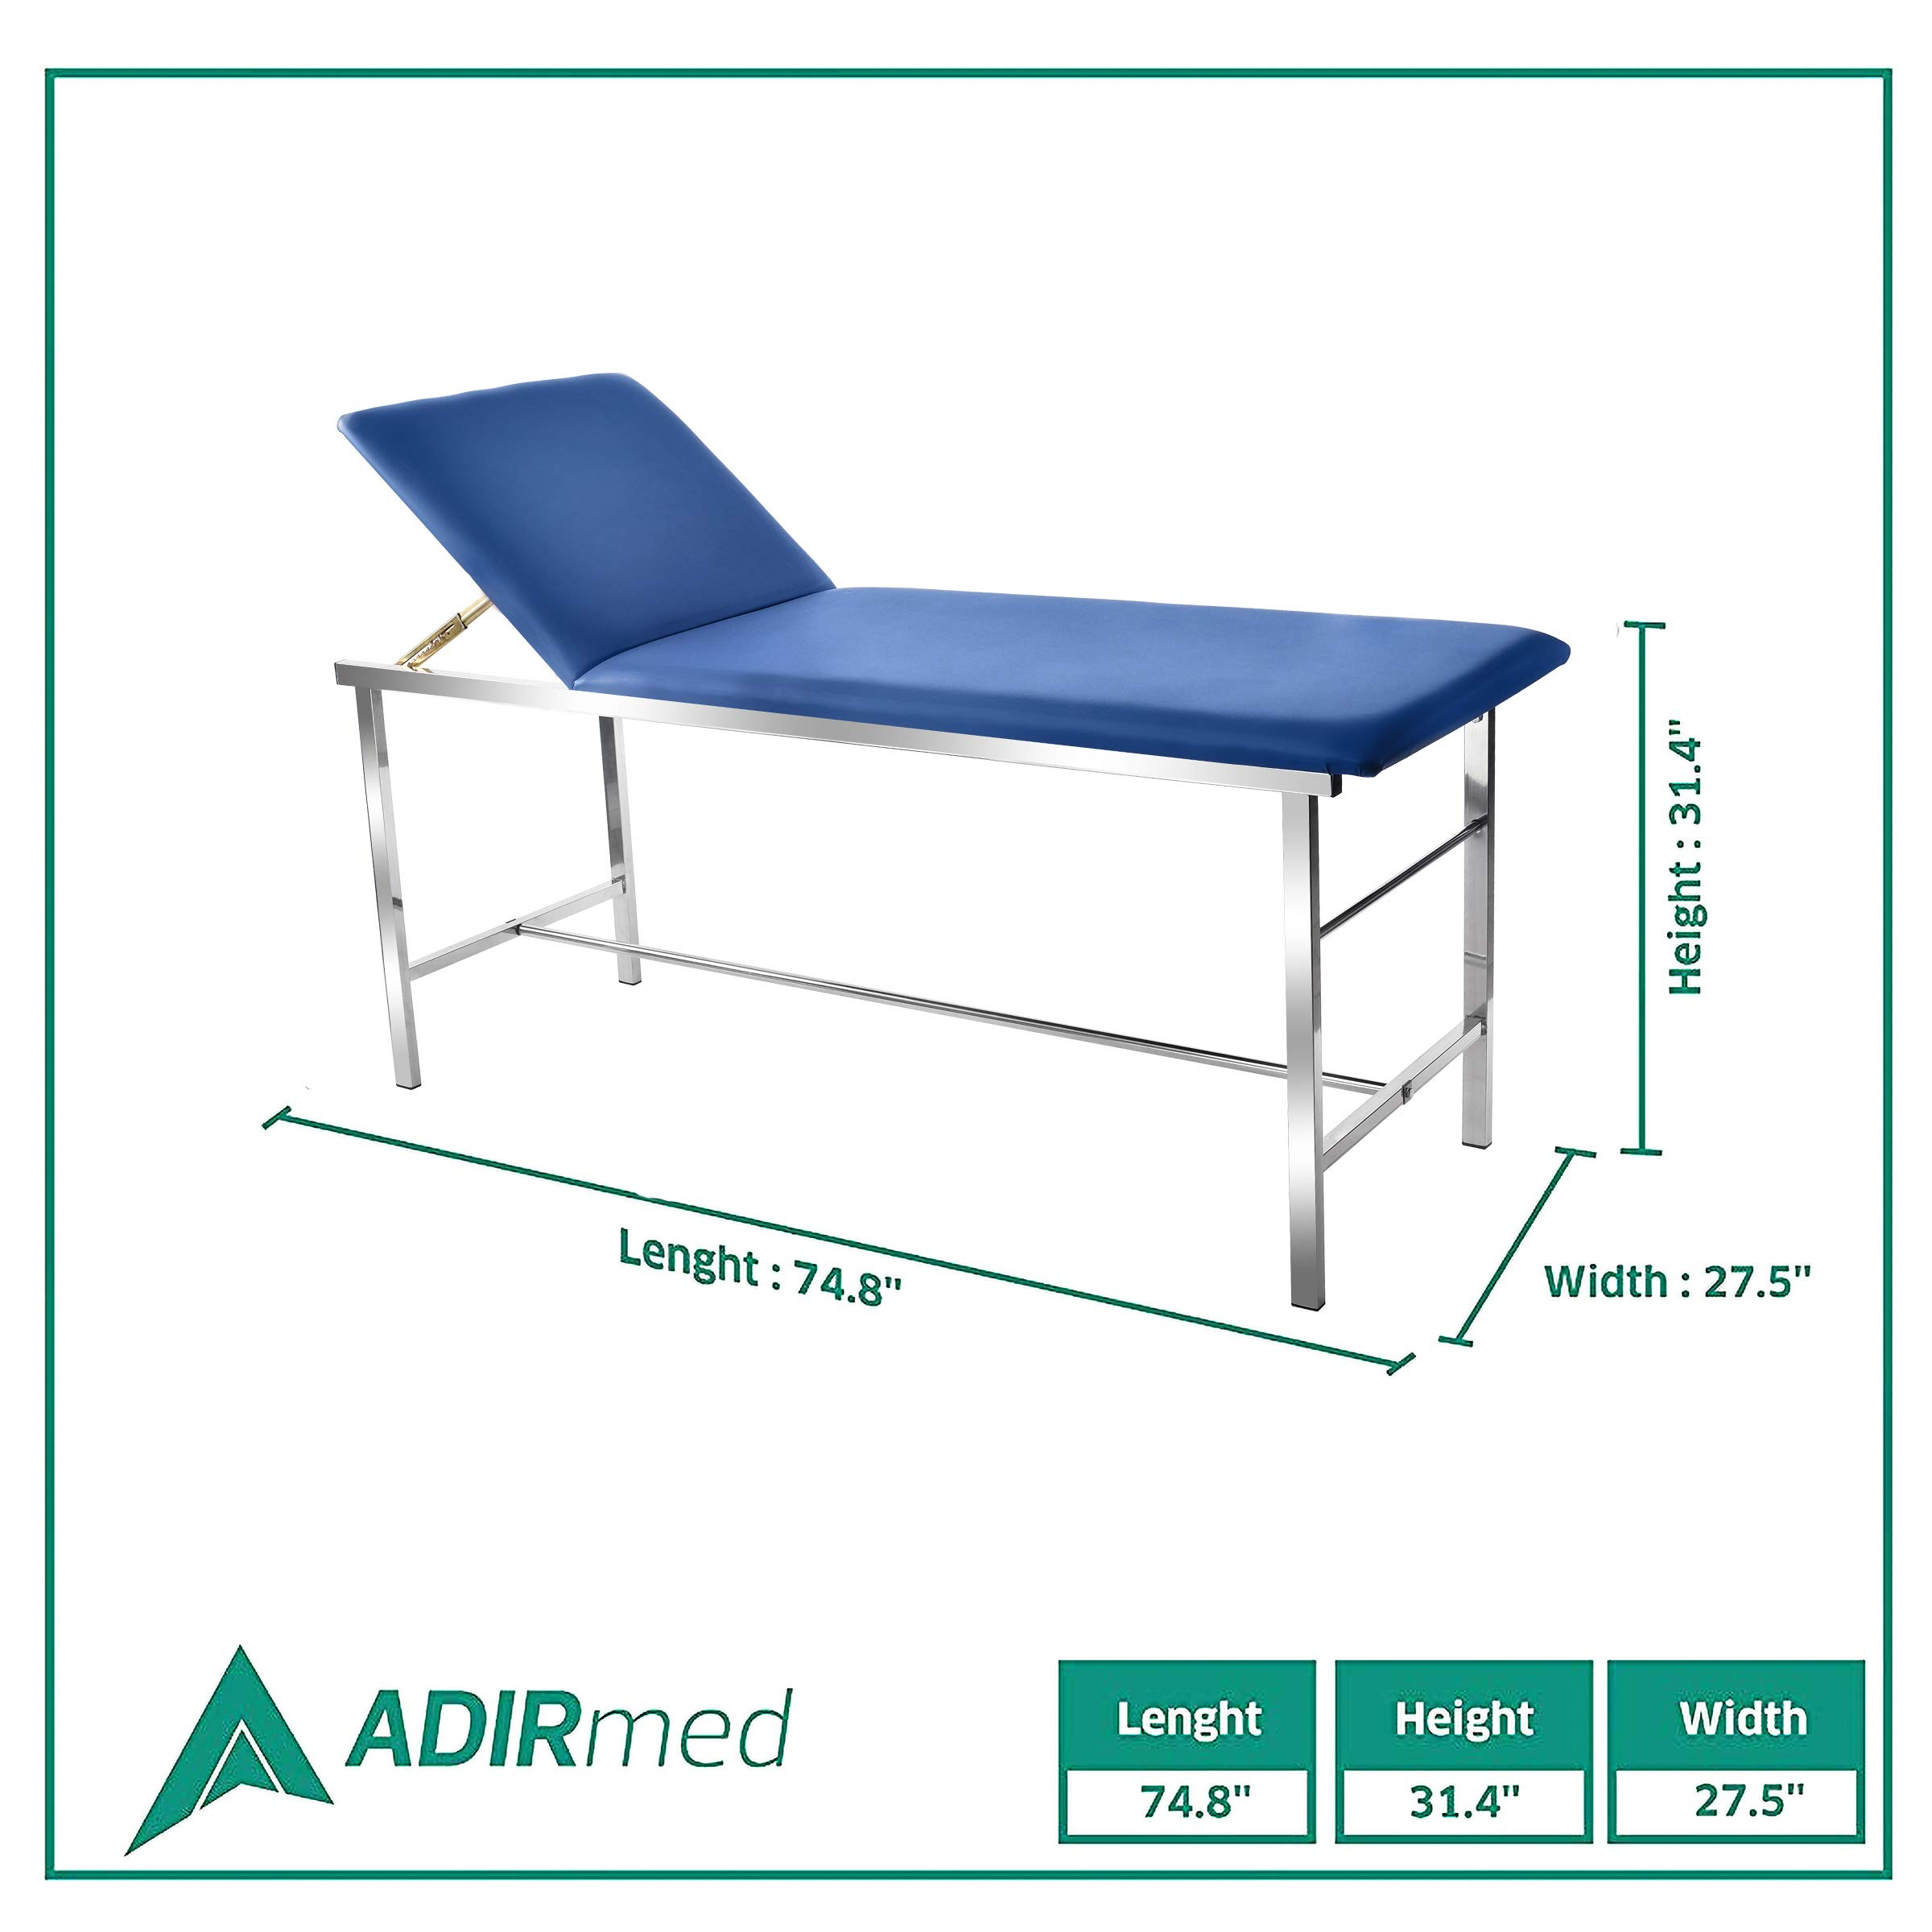 "AdirMed Reliable & Comfortable Medical Exam Table - Built In Paper Towel  Dispenser - Durable 2"" Foam Padding - Powder Coated Steel Frame -"